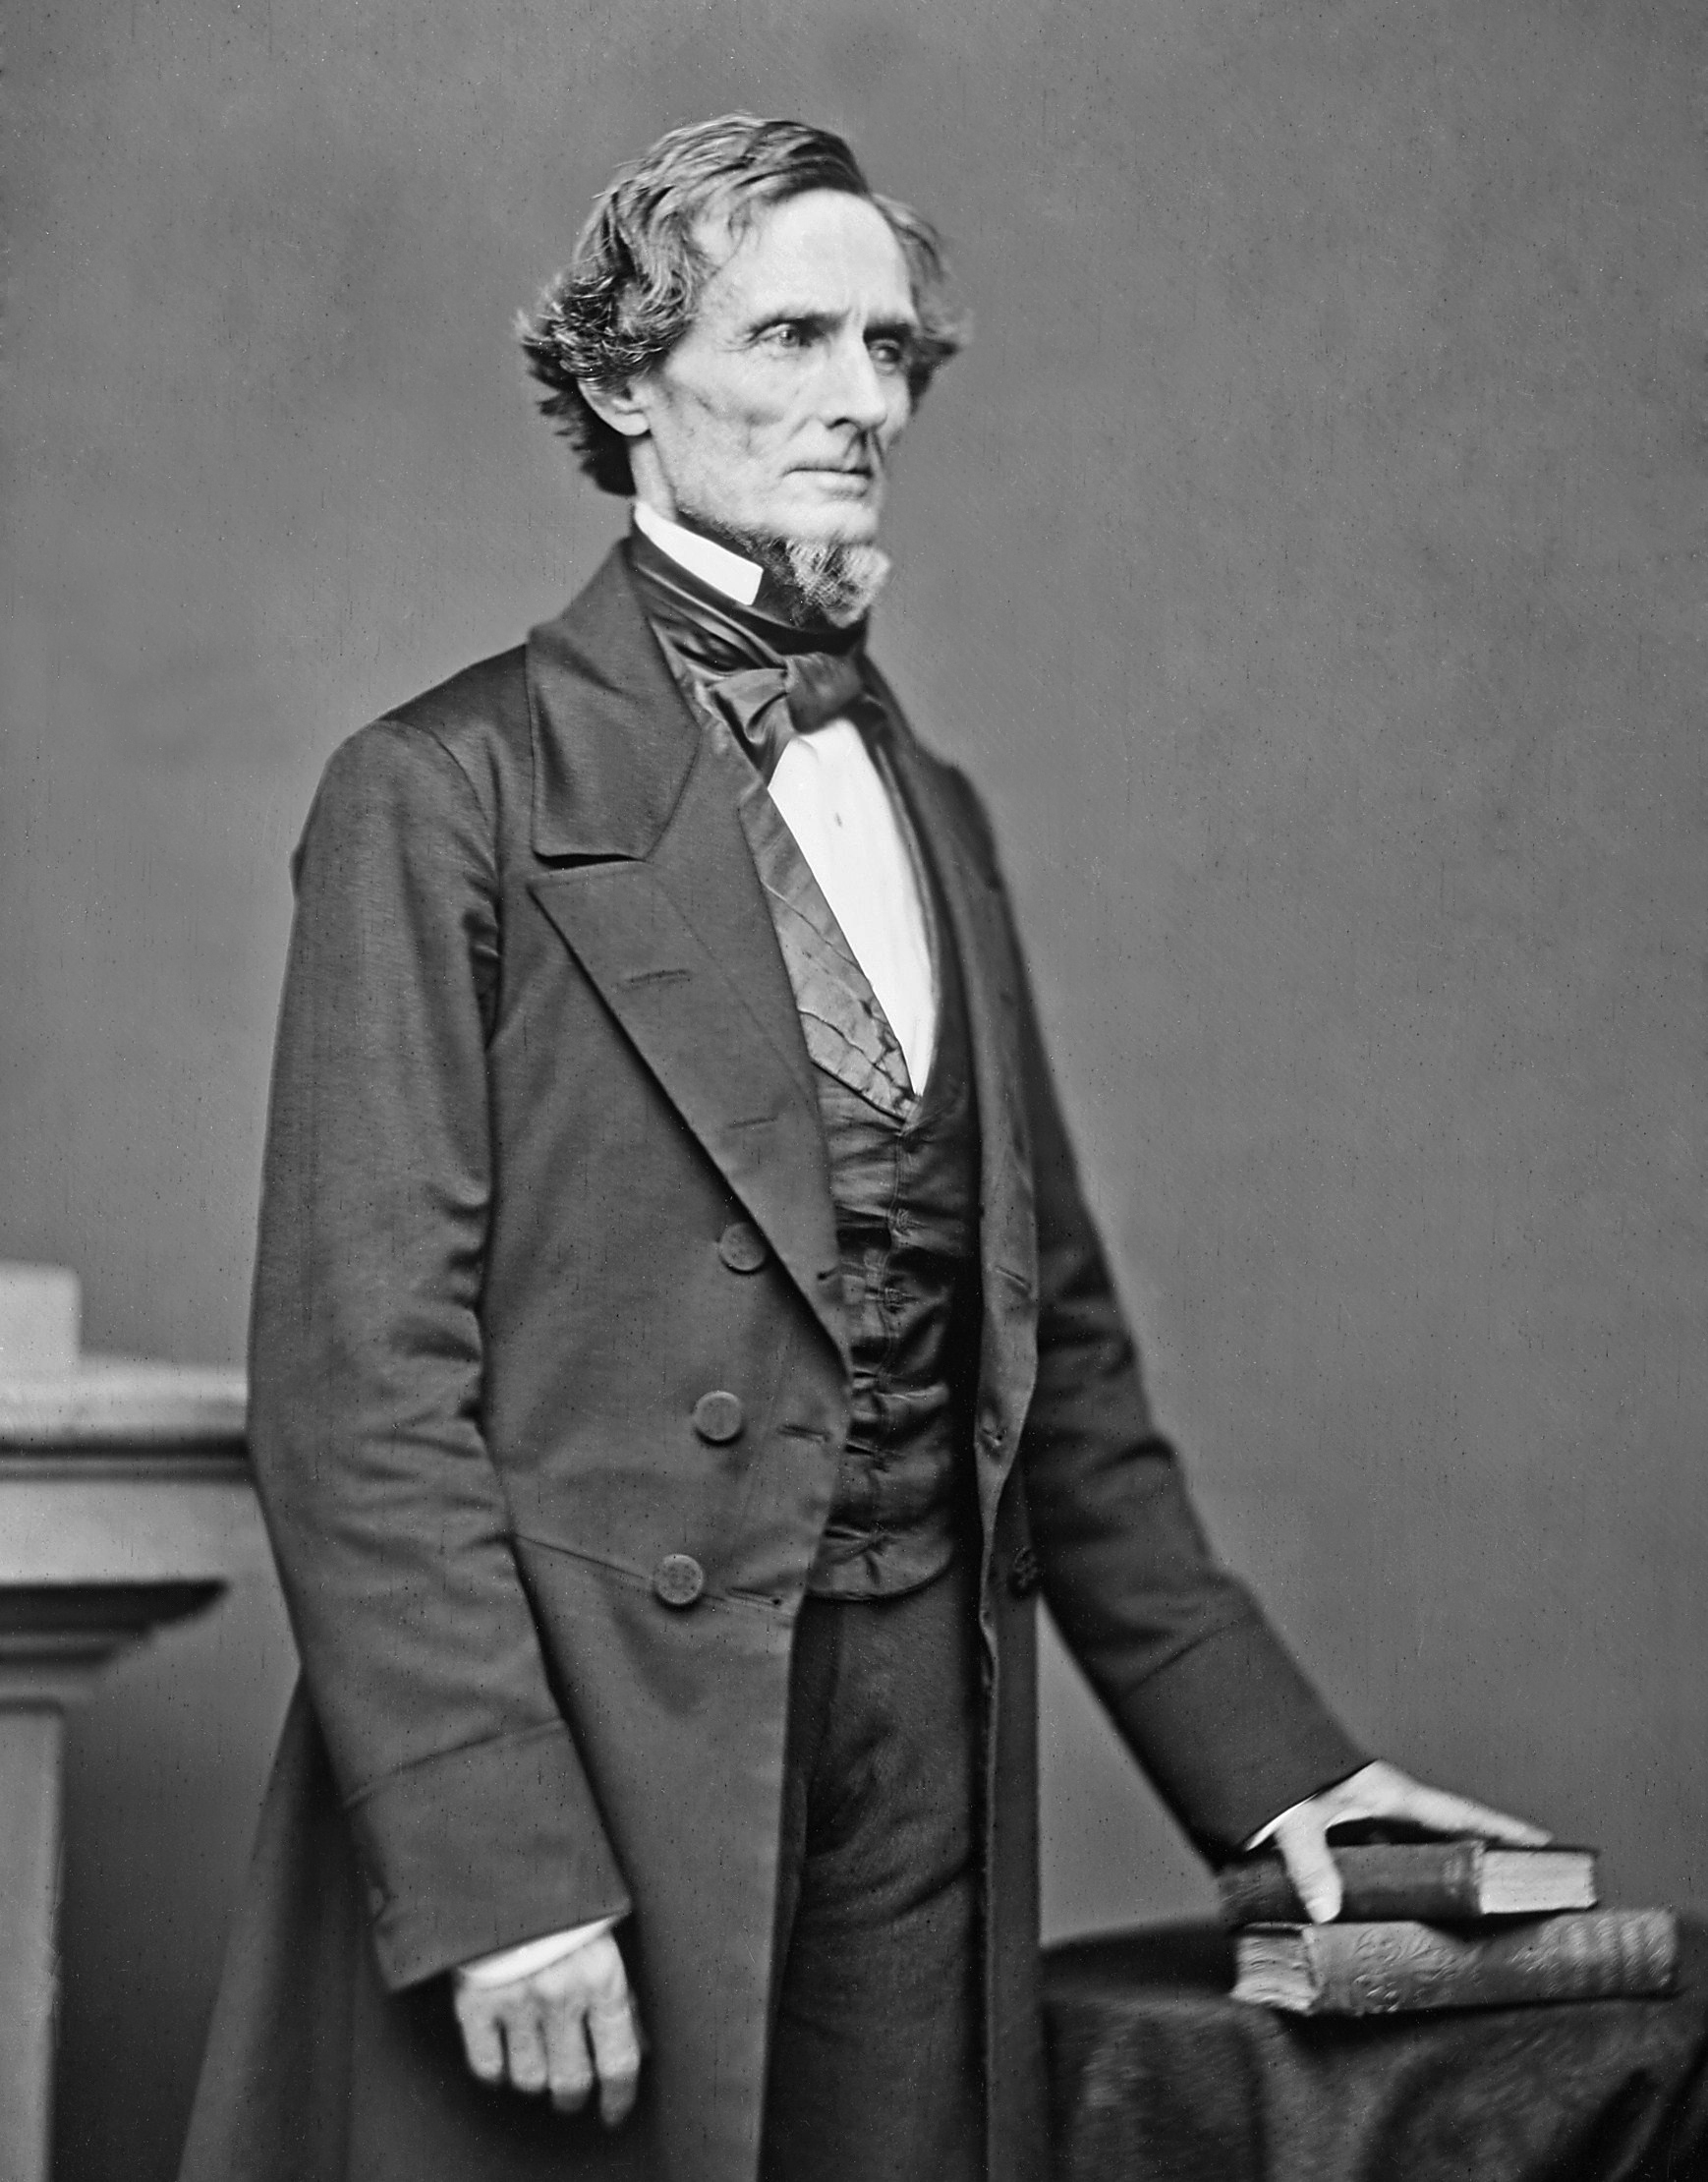 http://upload.wikimedia.org/wikipedia/commons/1/10/President-Jefferson-Davis.jpg